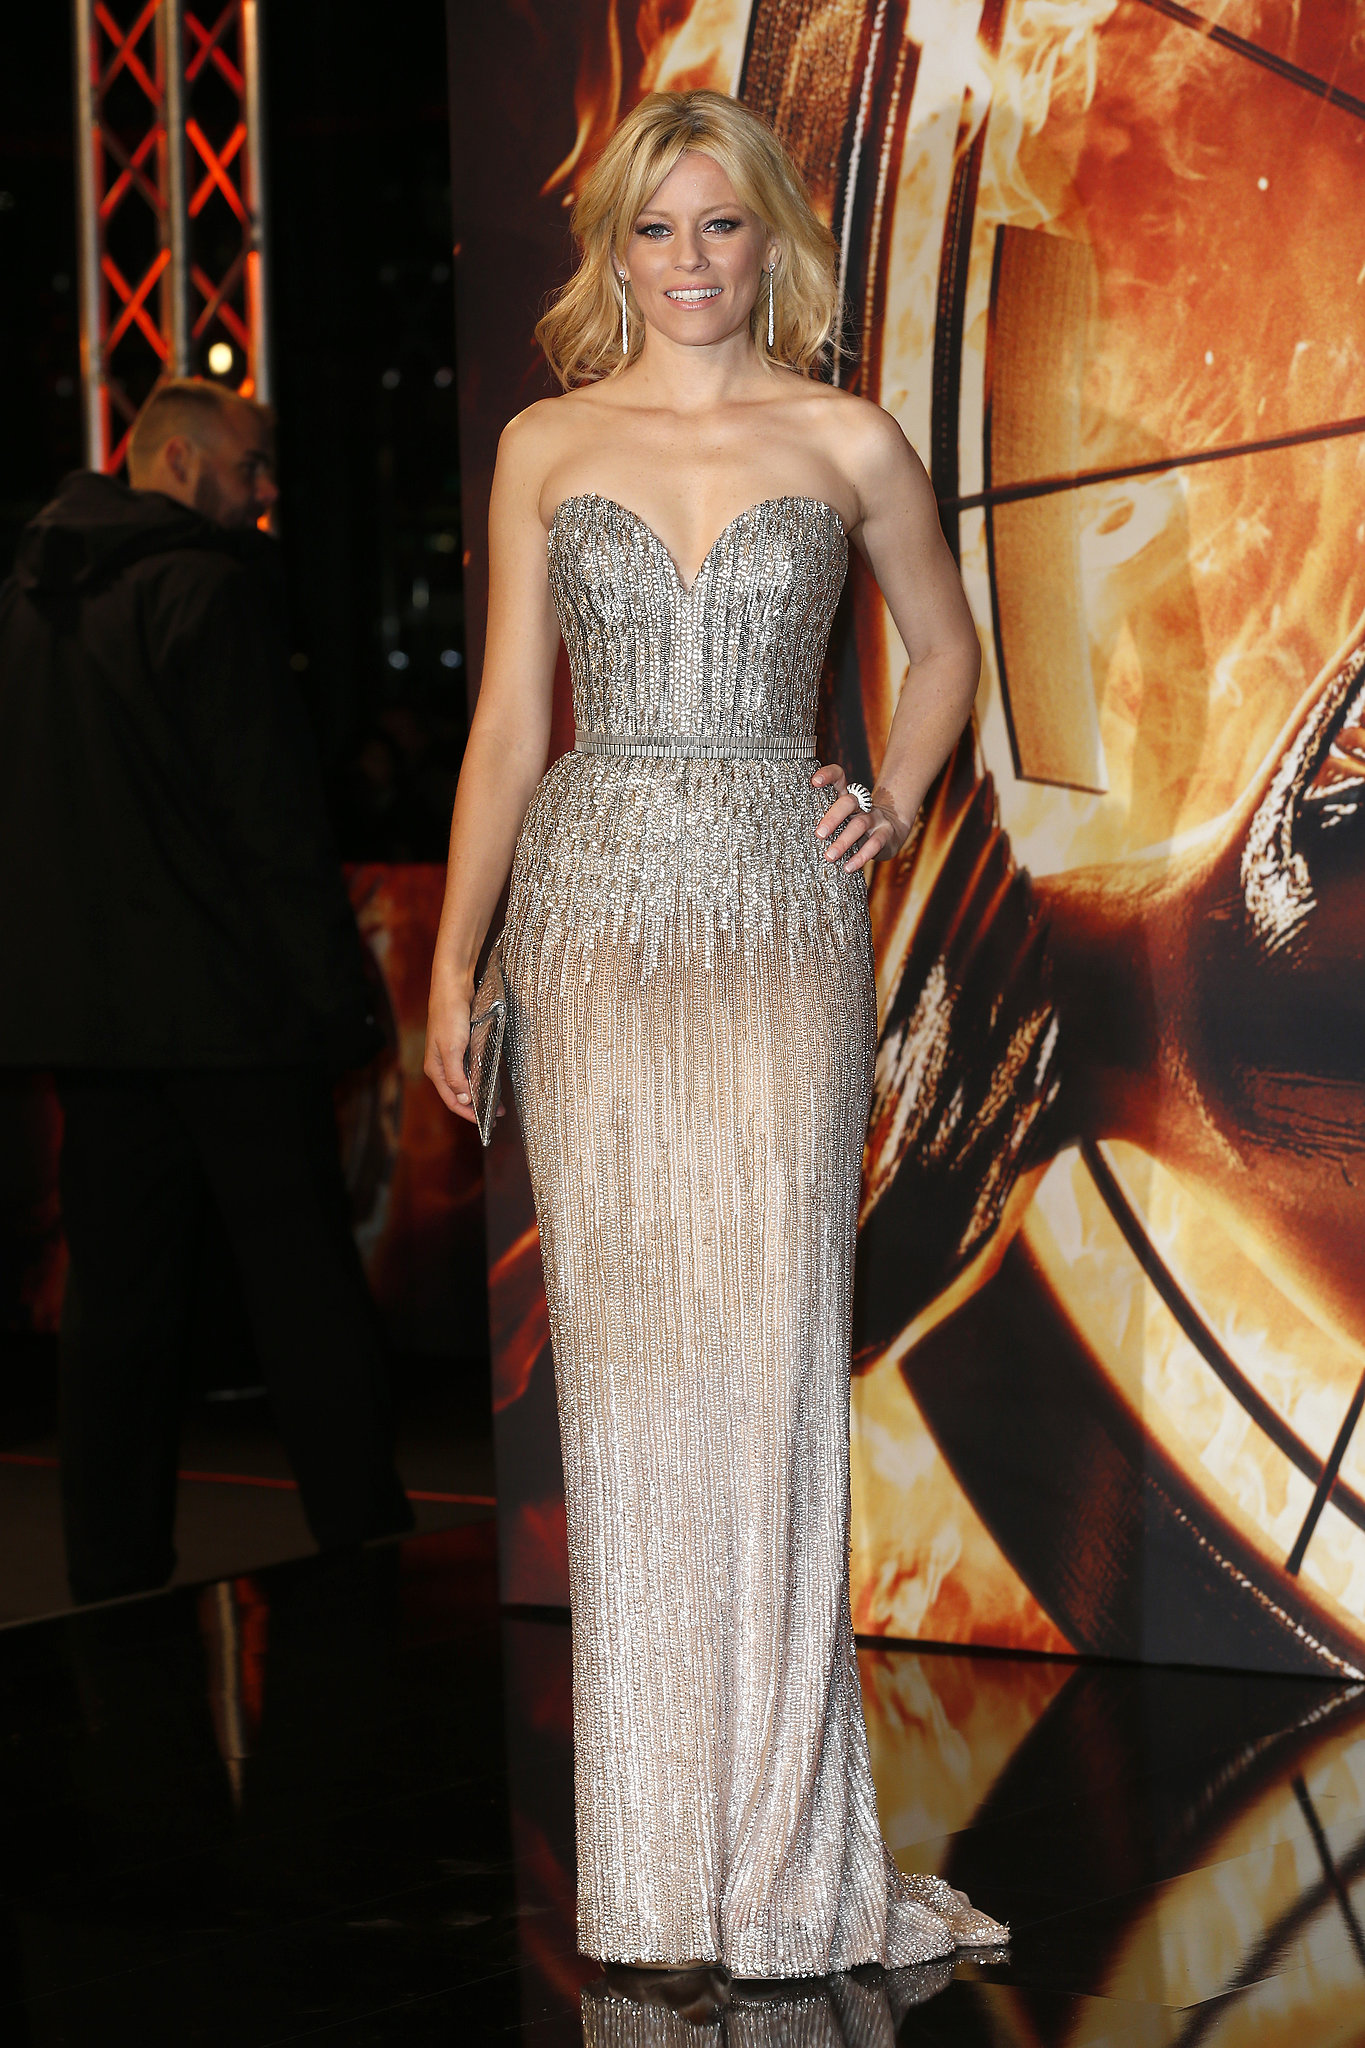 Elizabeth Banks shimmered in a strapless Elie Saab Haute Couture gown embellished with silvery sequins at the Germany premiere, paired with a Kara Ross clutch and Brian Atwood heels.